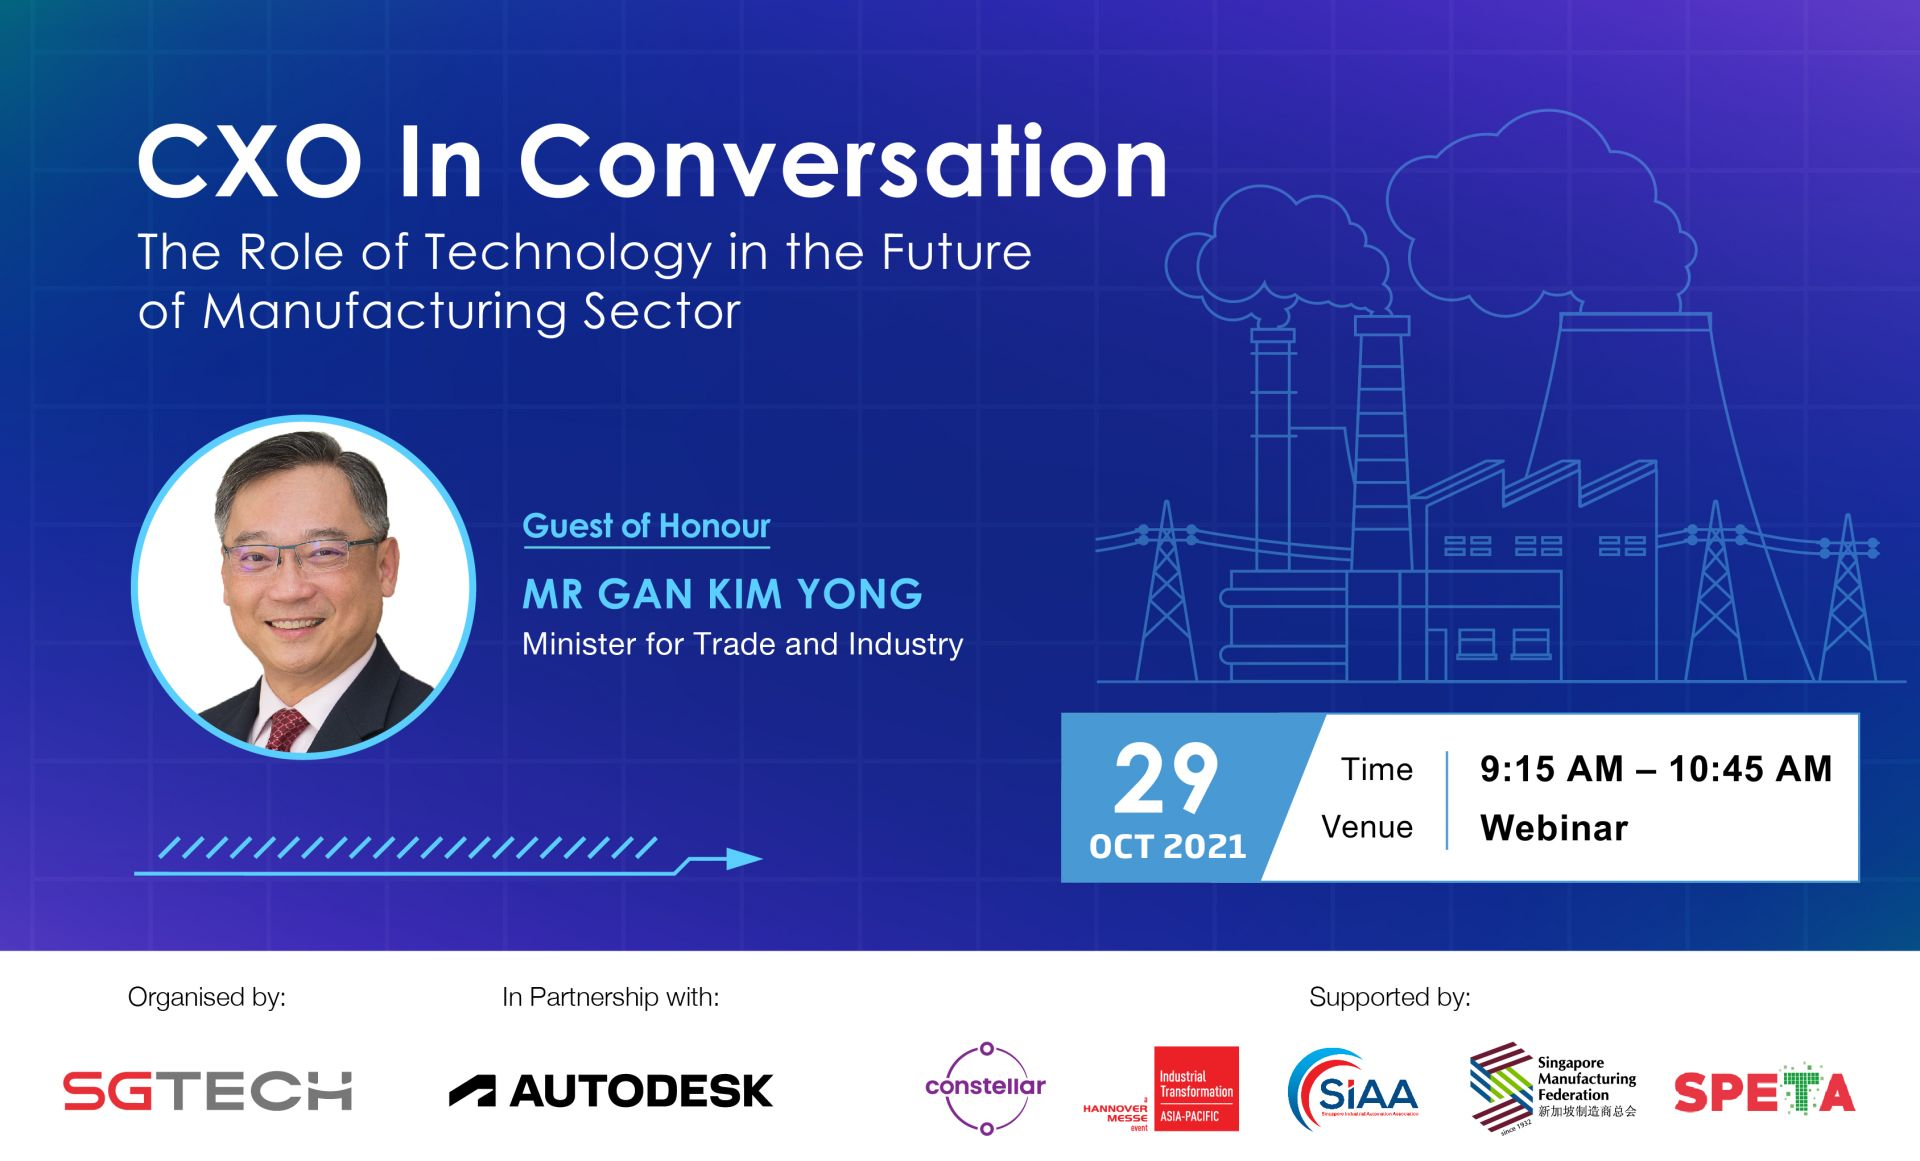 CXO In Conversation: The Role of Technology in the Future of Manufacturing Sector